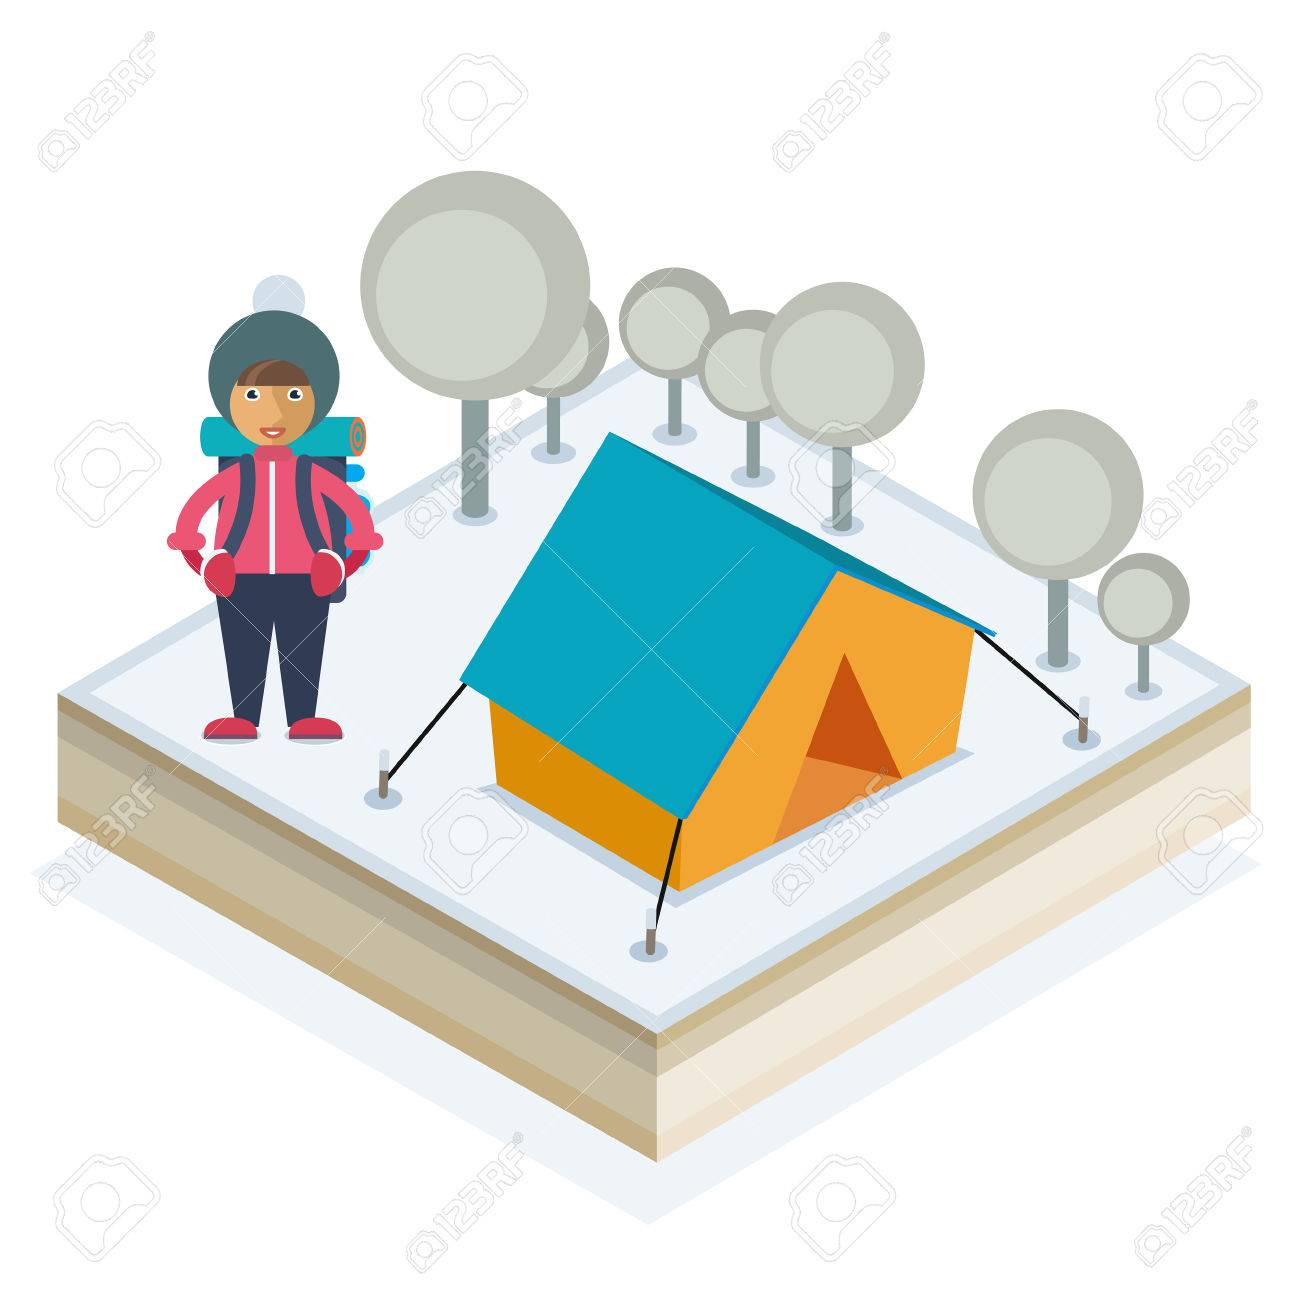 A girl with a backpack and a tent in a winter forest Stock Vector - 48104806